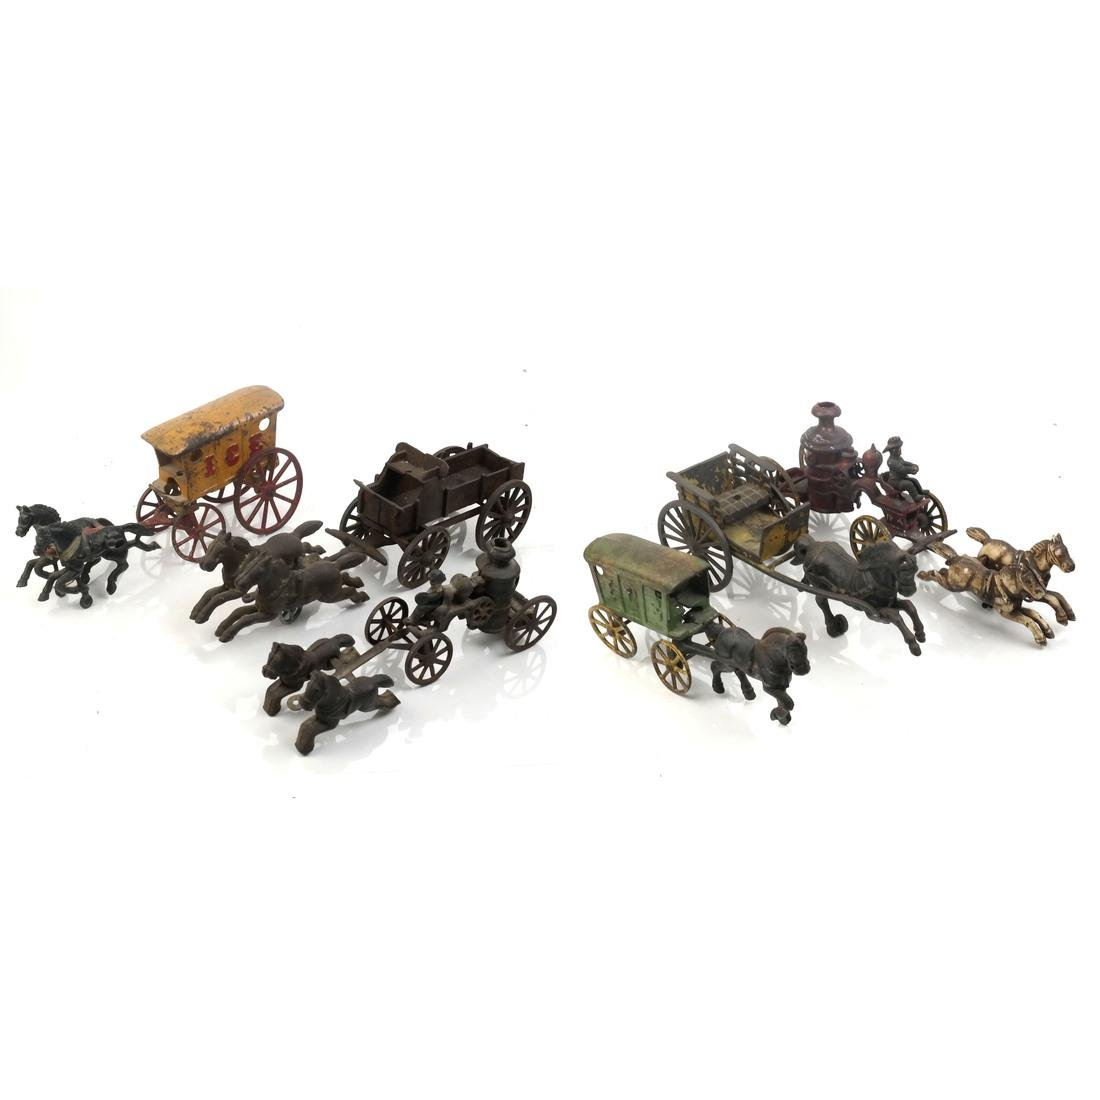 Collection of Antique Iron Toy Miniatures